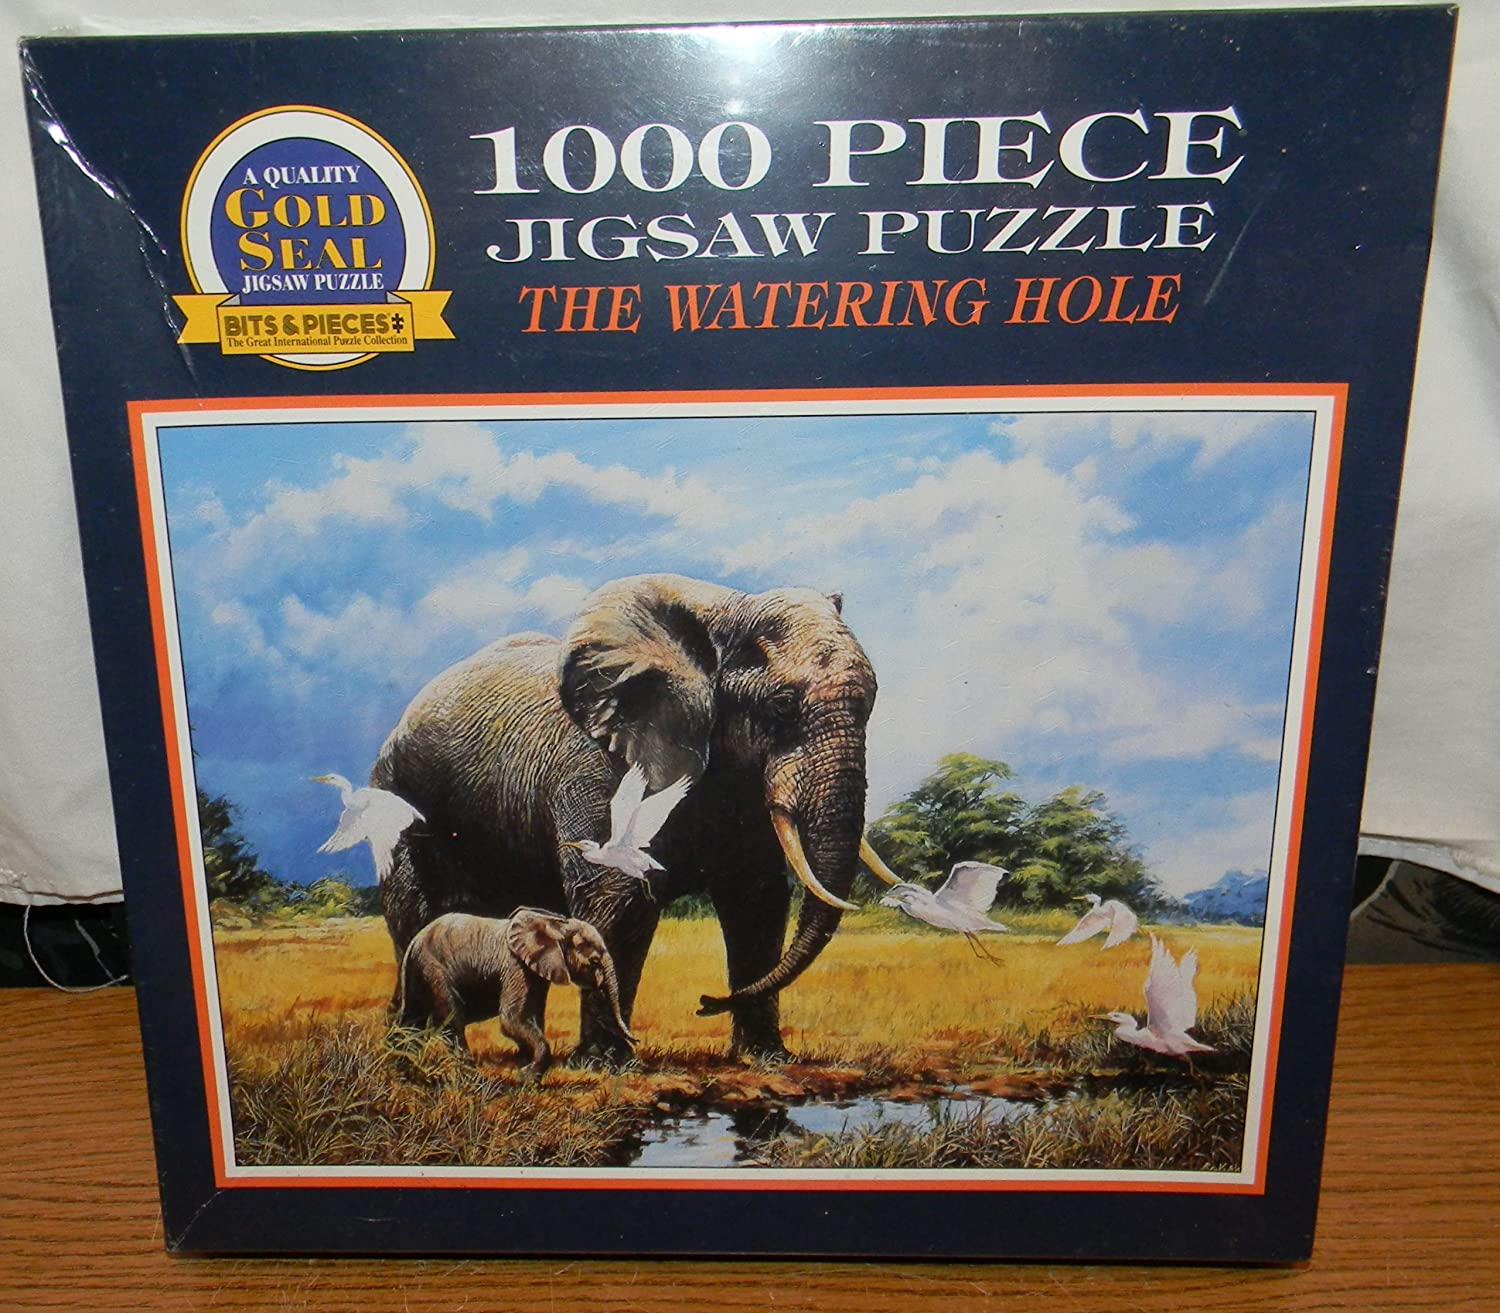 gold seal 1000 piece jigsaw puzzle 20 x 27 inches the watering hole elephant